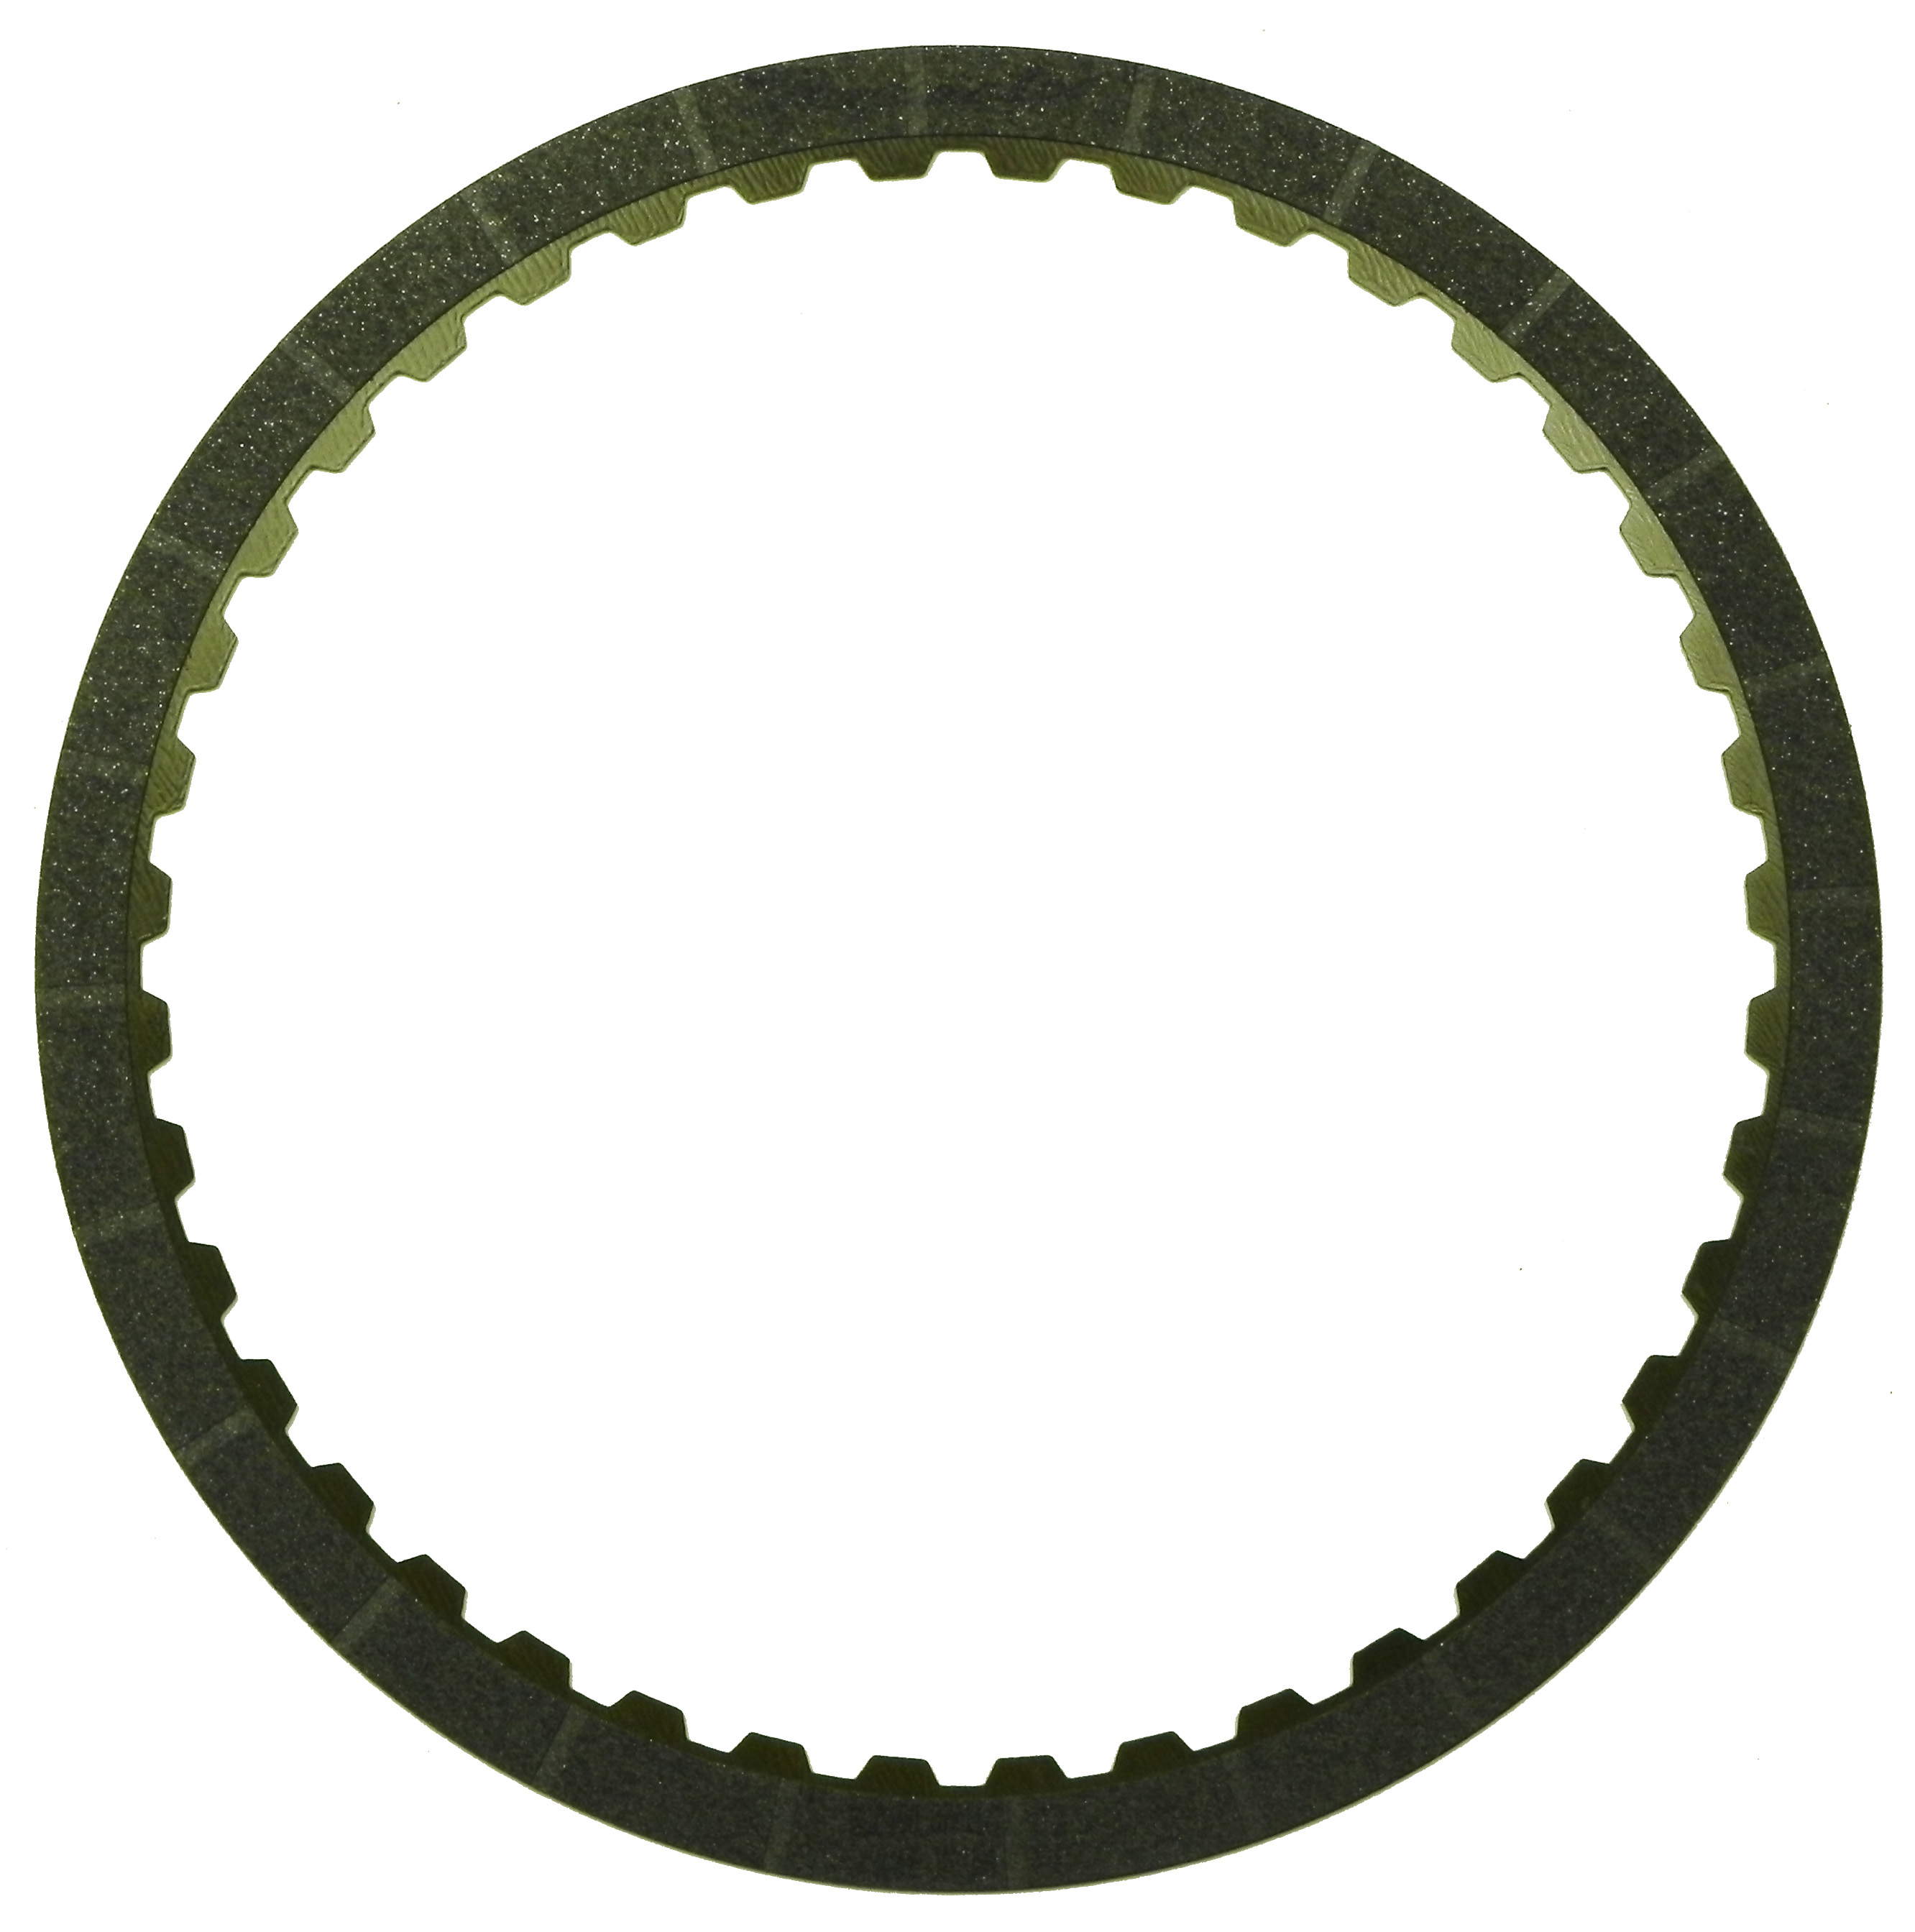 R560490 | 2007-ON Friction Clutch Plate High Energy B1 Reverse (5-6) (#1 Brake) High Energy